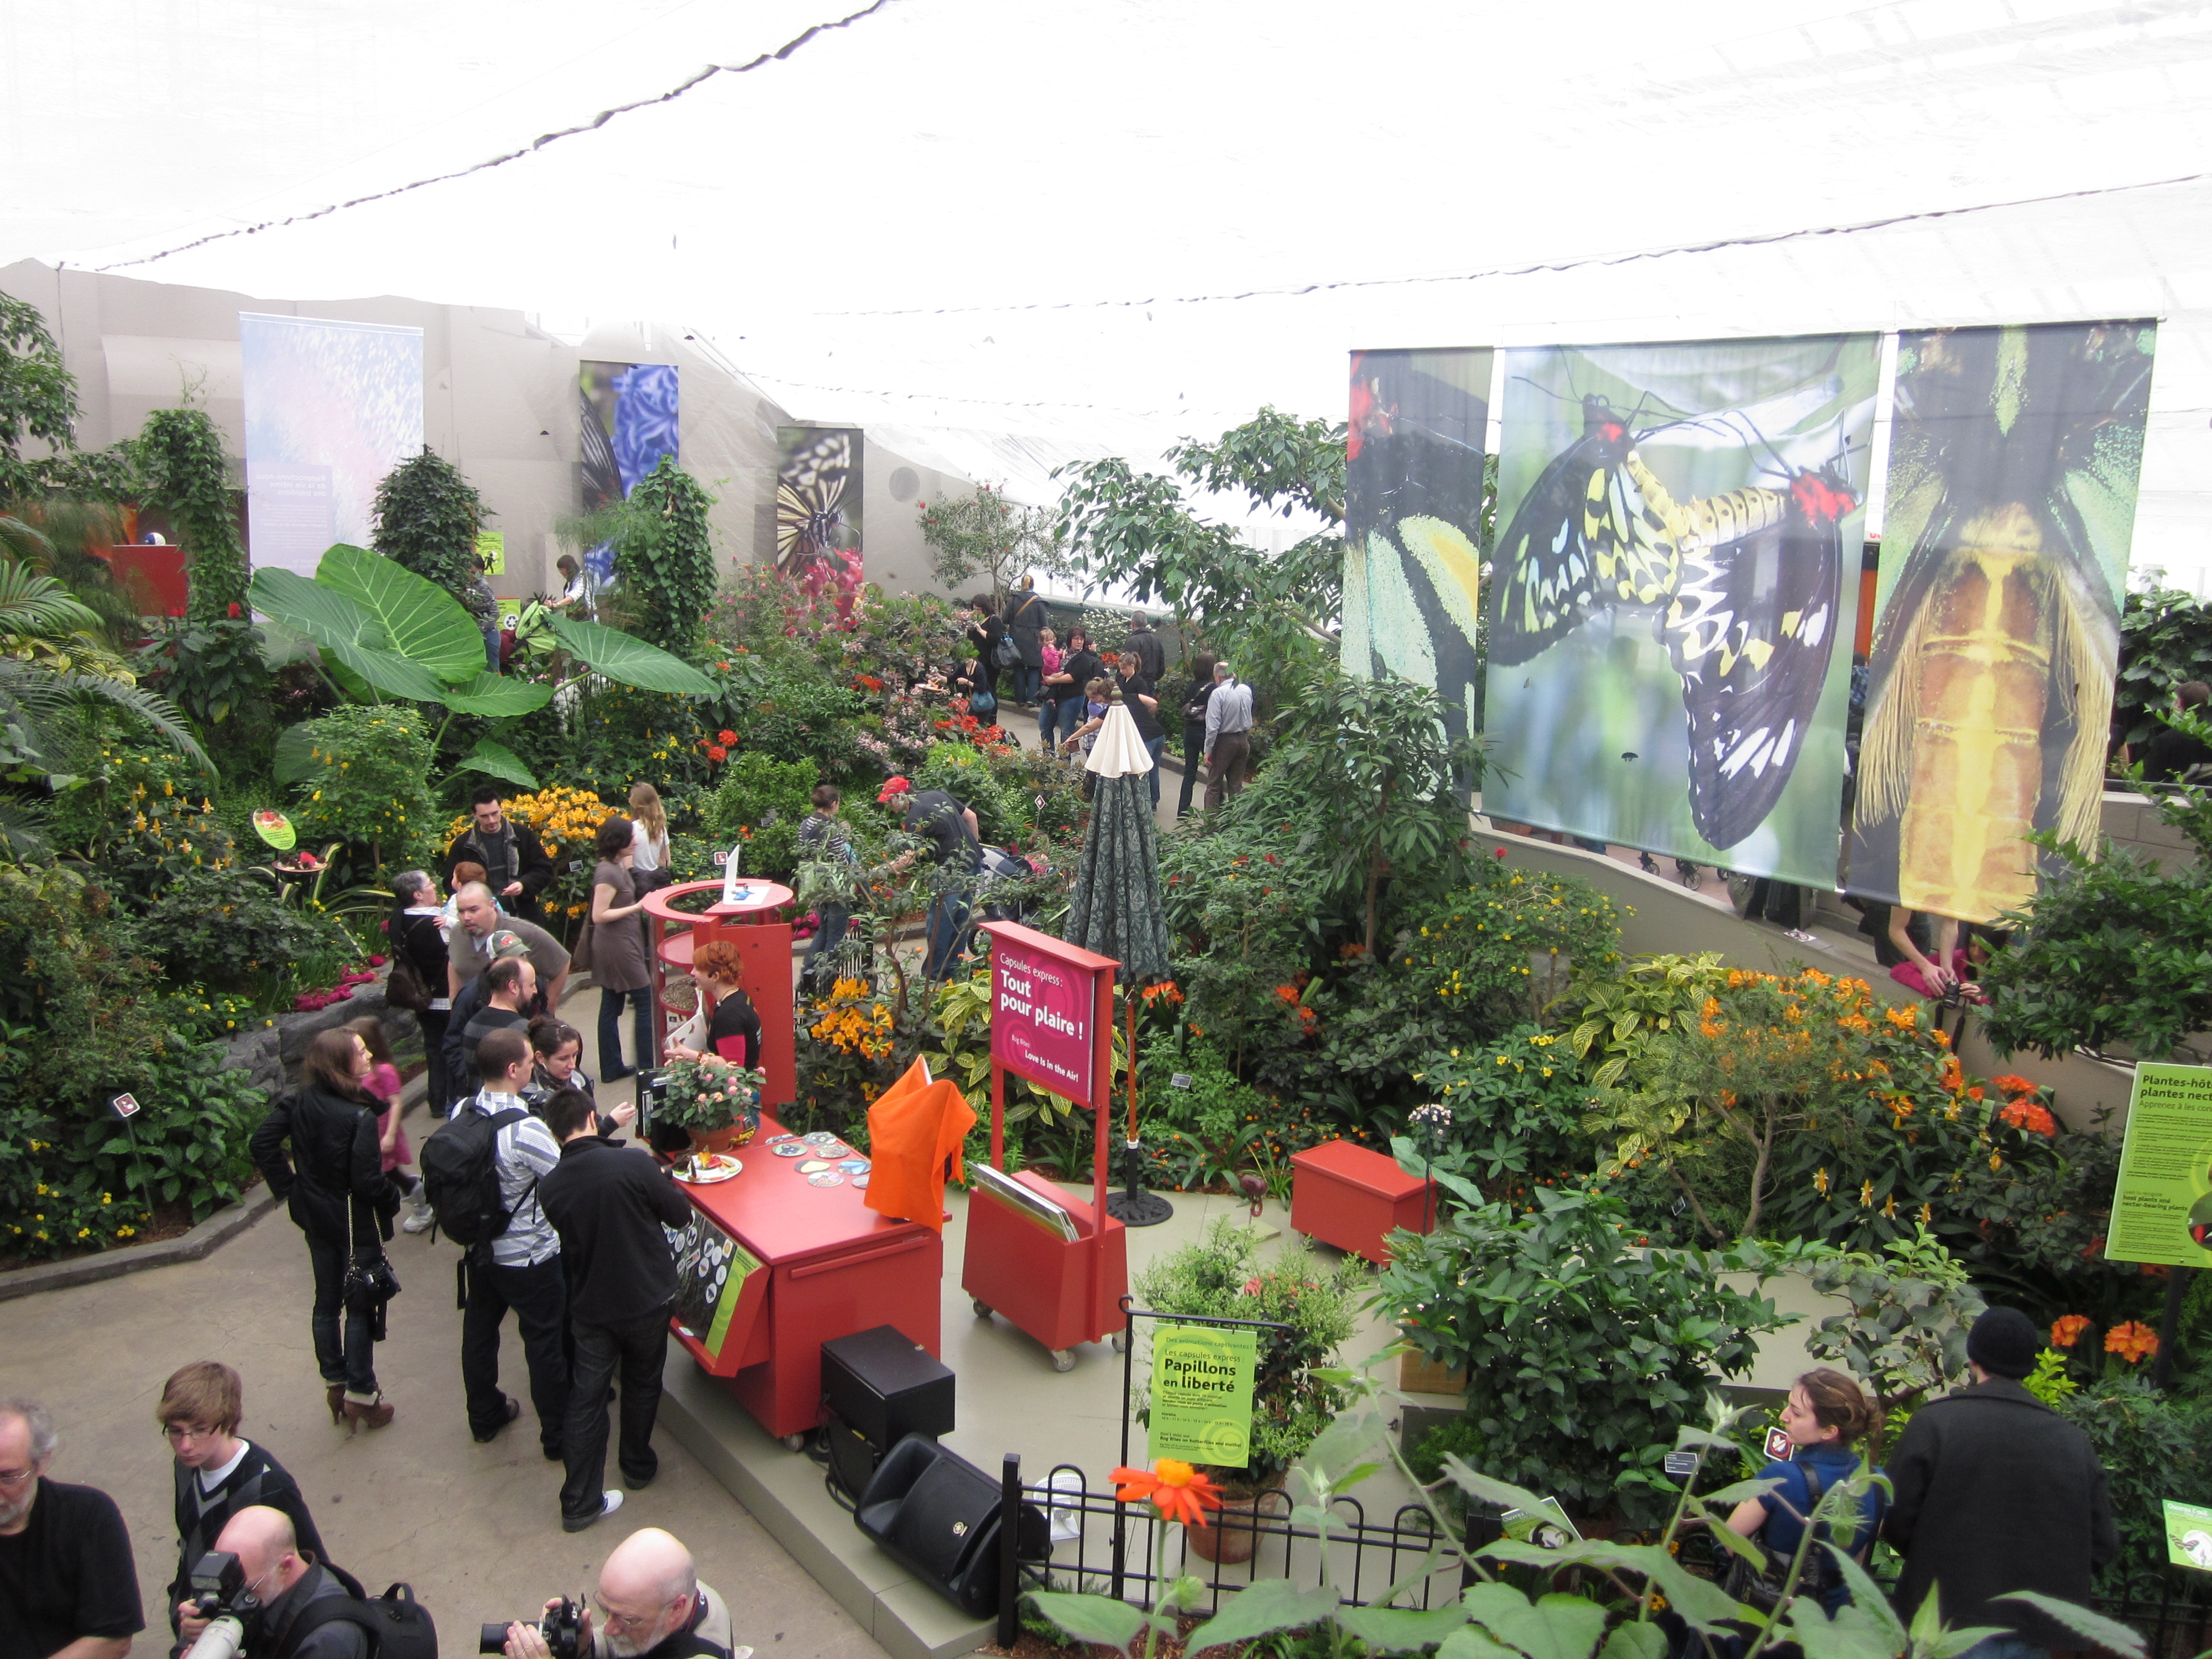 Ordinaire Butterflies Go Free Is An Annual Event At The Montreal Botanical Gardens.  Thousands Of Butterflies U2014 Almost All From Butterfly Farms In Costa Rica U2014  Are ...